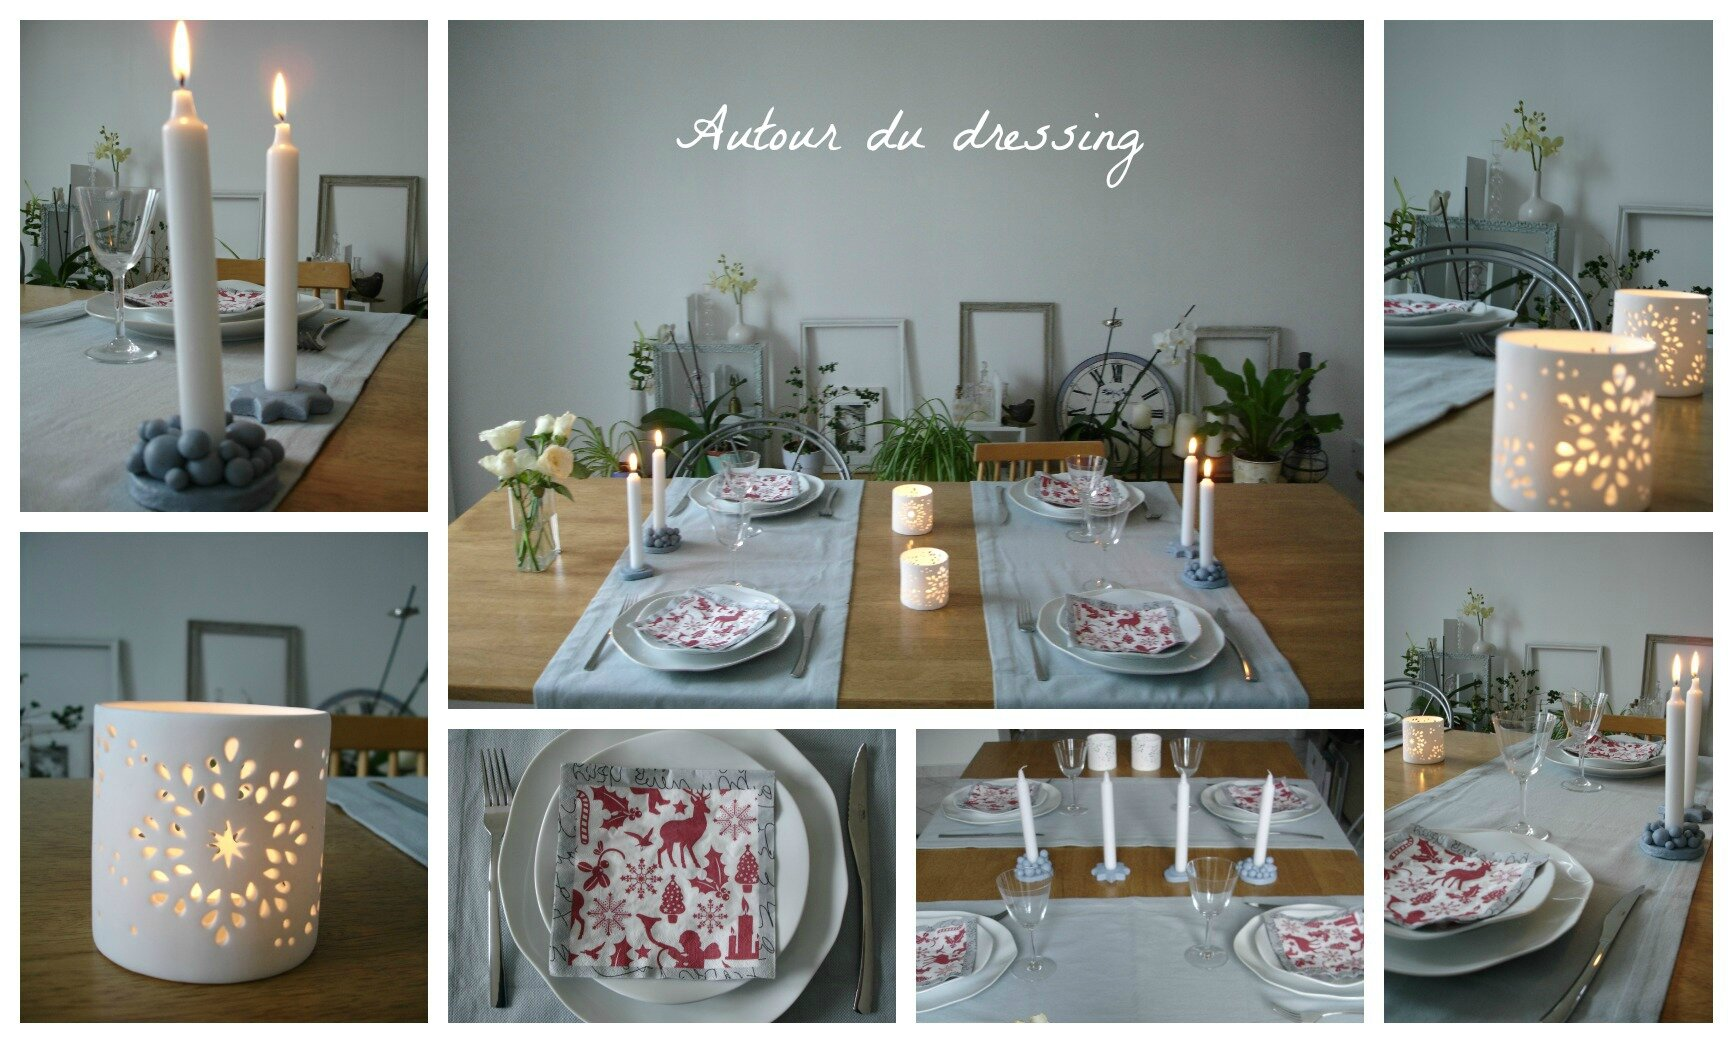 Diy archives page 2 sur 3 autour du dressingautour du for Diy deco table noel